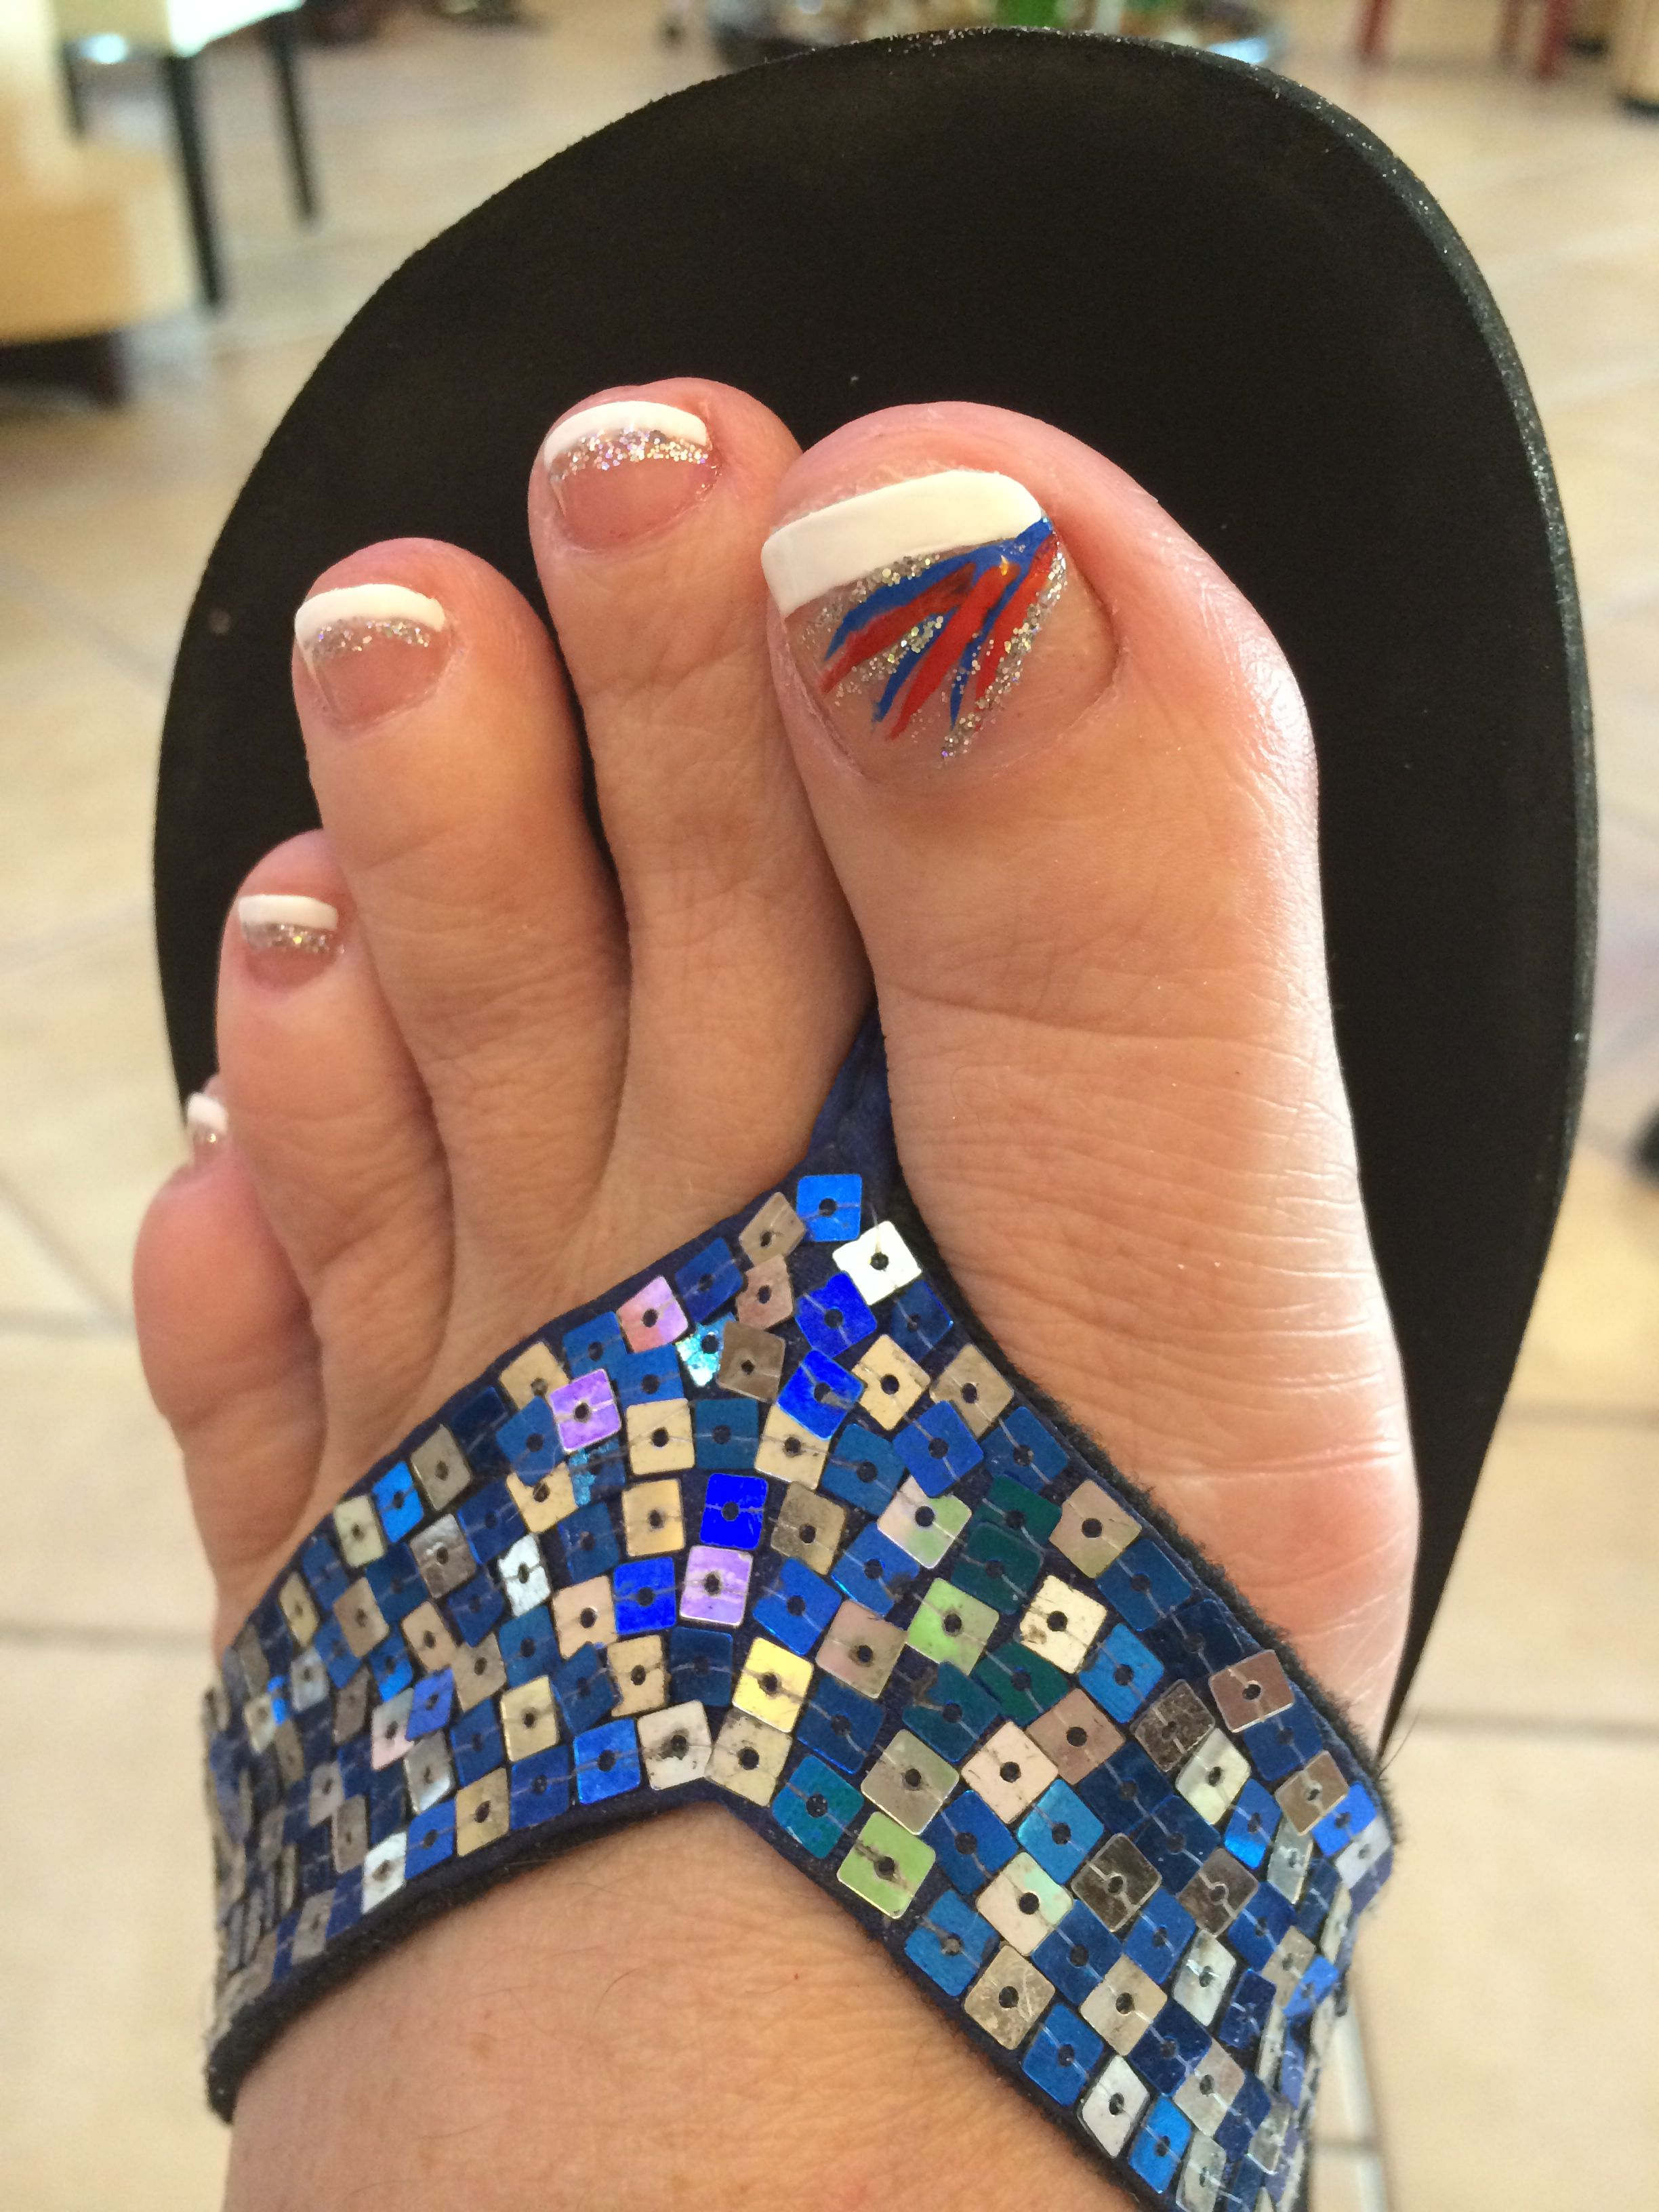 My 4th of July toes | Nailed it! | Pinterest | Mani pedi and Pedi